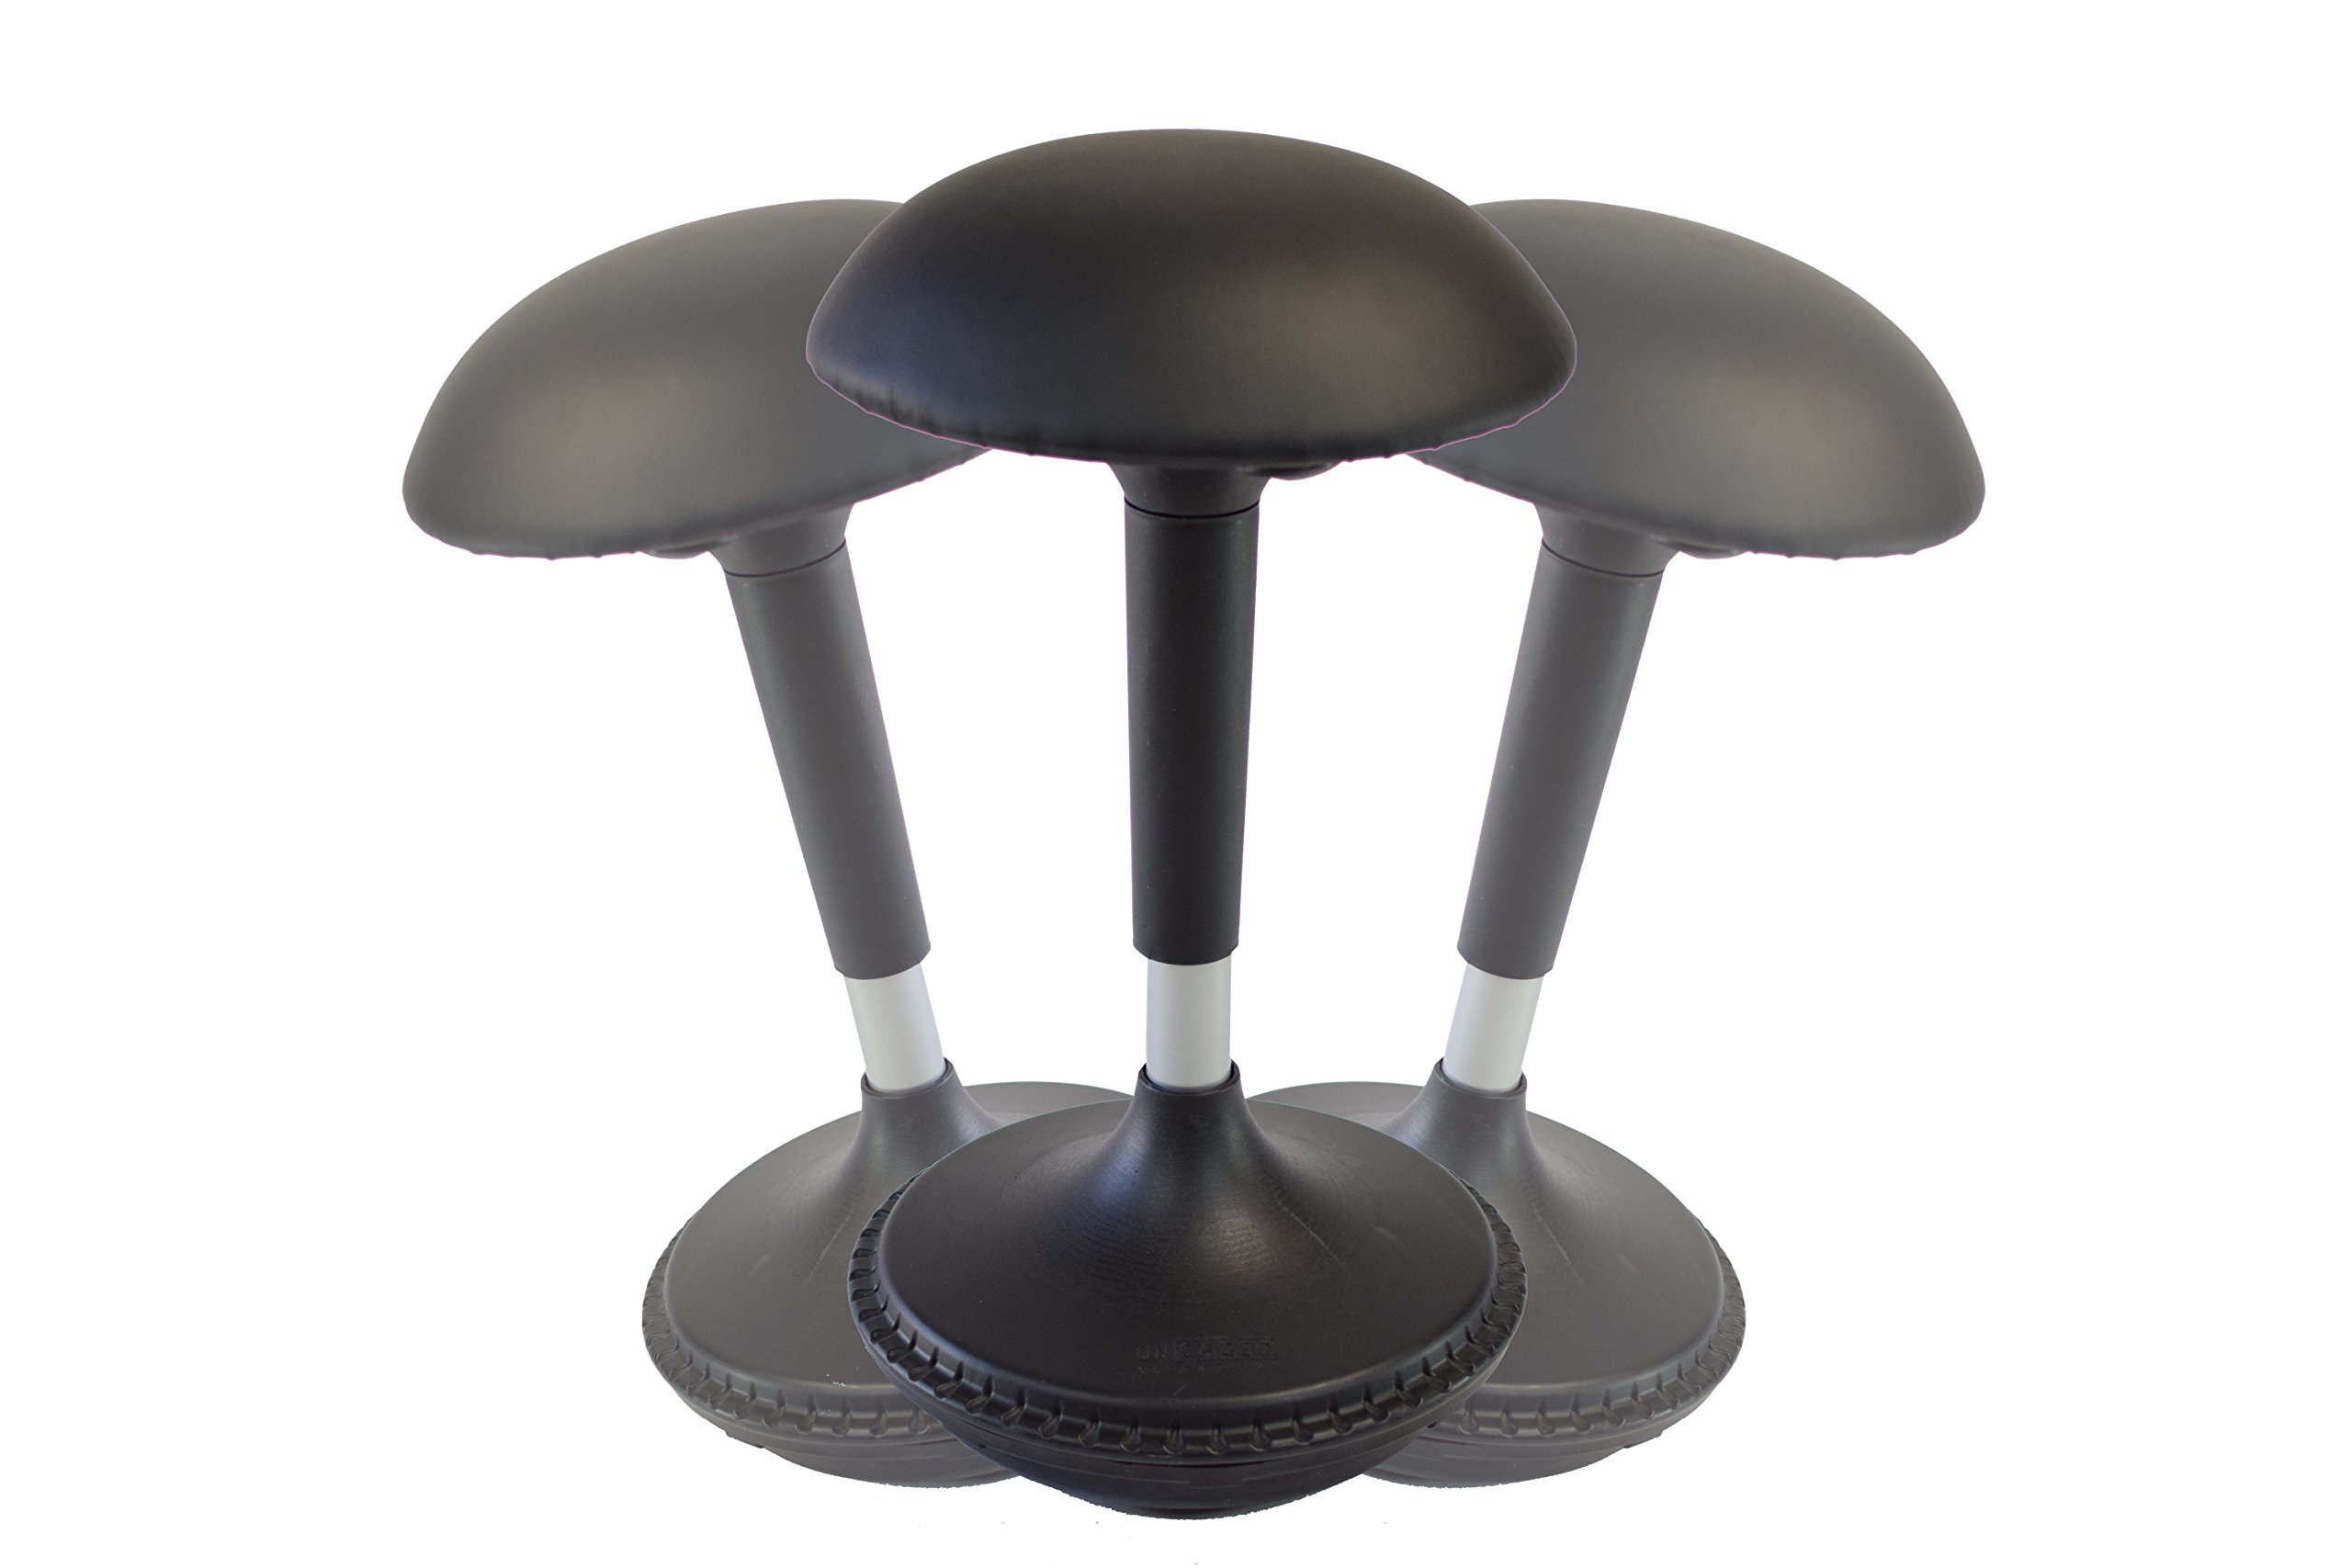 Uncaged Ergonomics WOBBLE STOOL 2 Leather Seat -Adjustable Height Active Sitting Balance, Perch, Standing Desk & Office Swivel Chair (Black Leather)